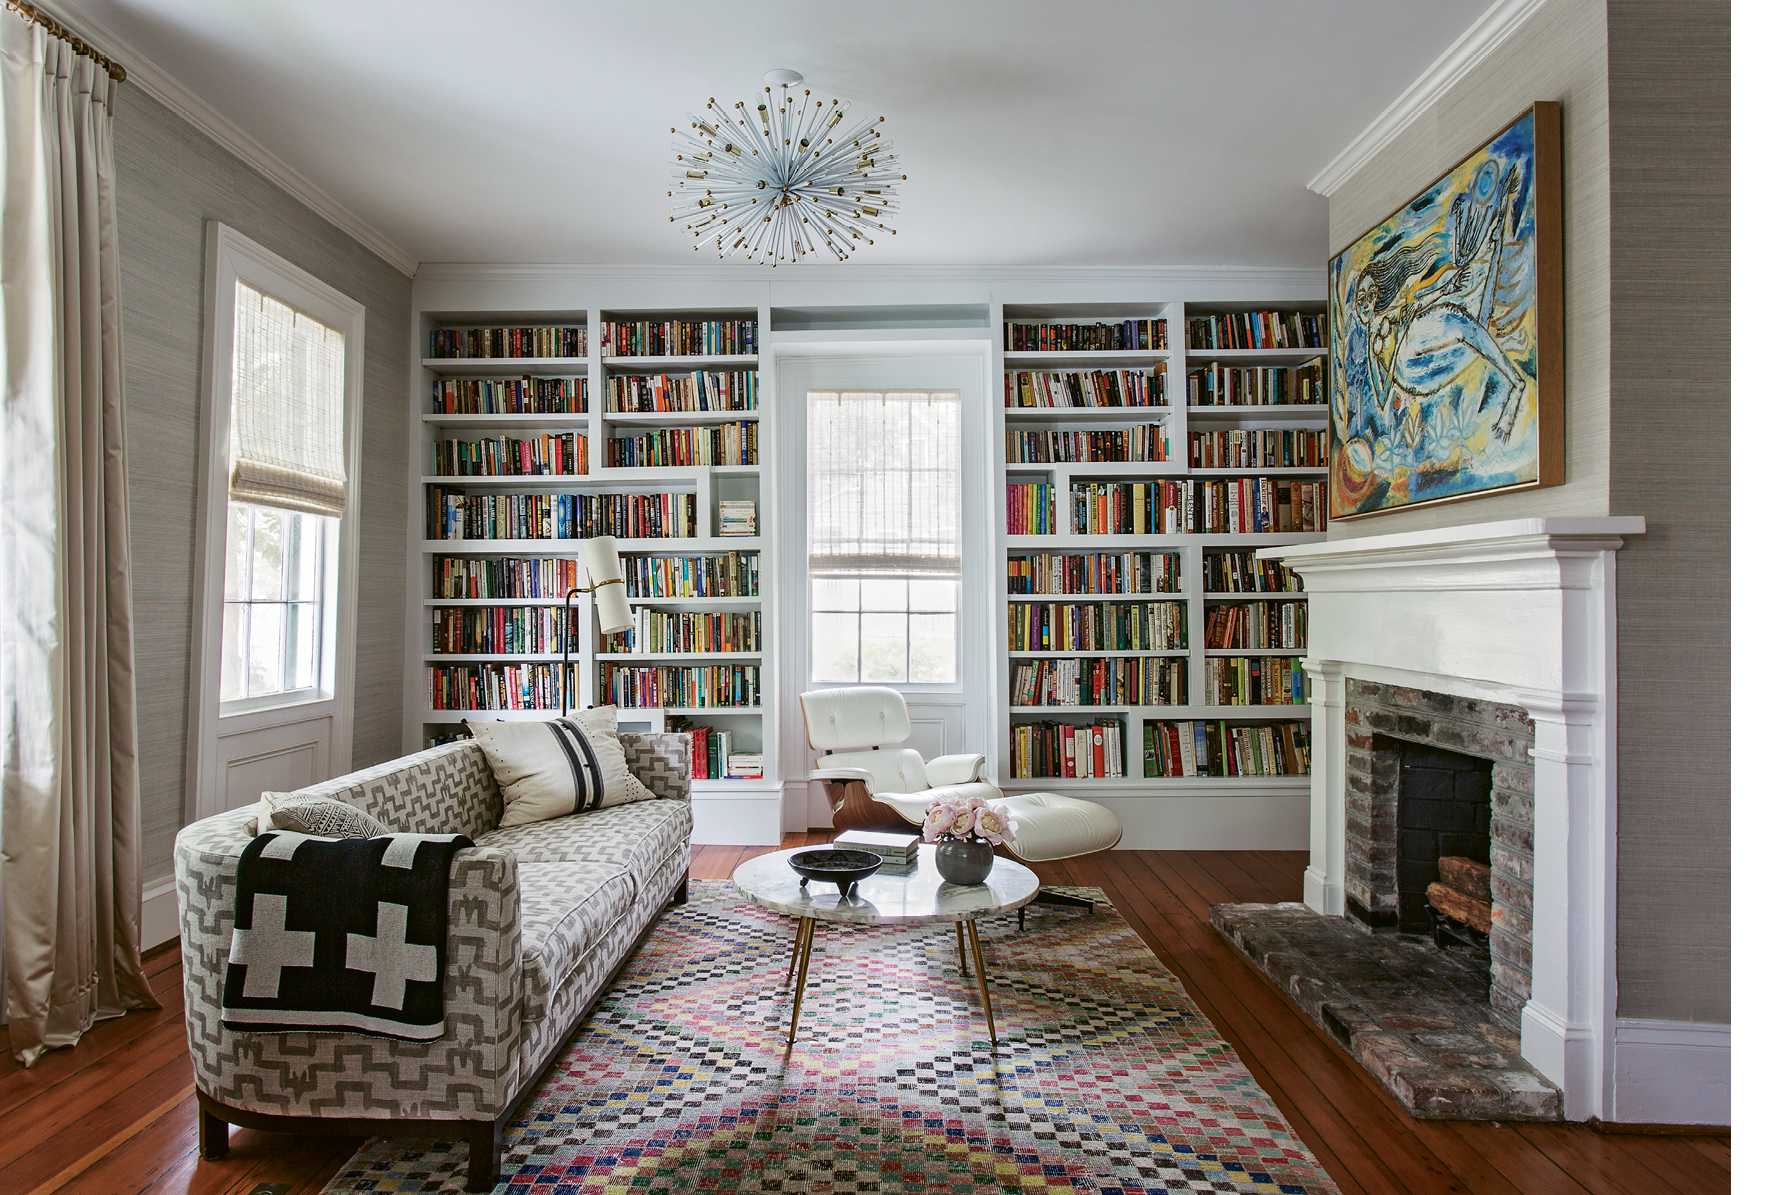 """PATTERN PLAY: In the library, a splashy yellow-and-blue painting by Indian artist Laxman Pai lives in harmony with a graphic pink rug and a patterned vintage sofa. Keenan says mixing textiles helps a home feel """"more lived-in and not so perfect."""""""